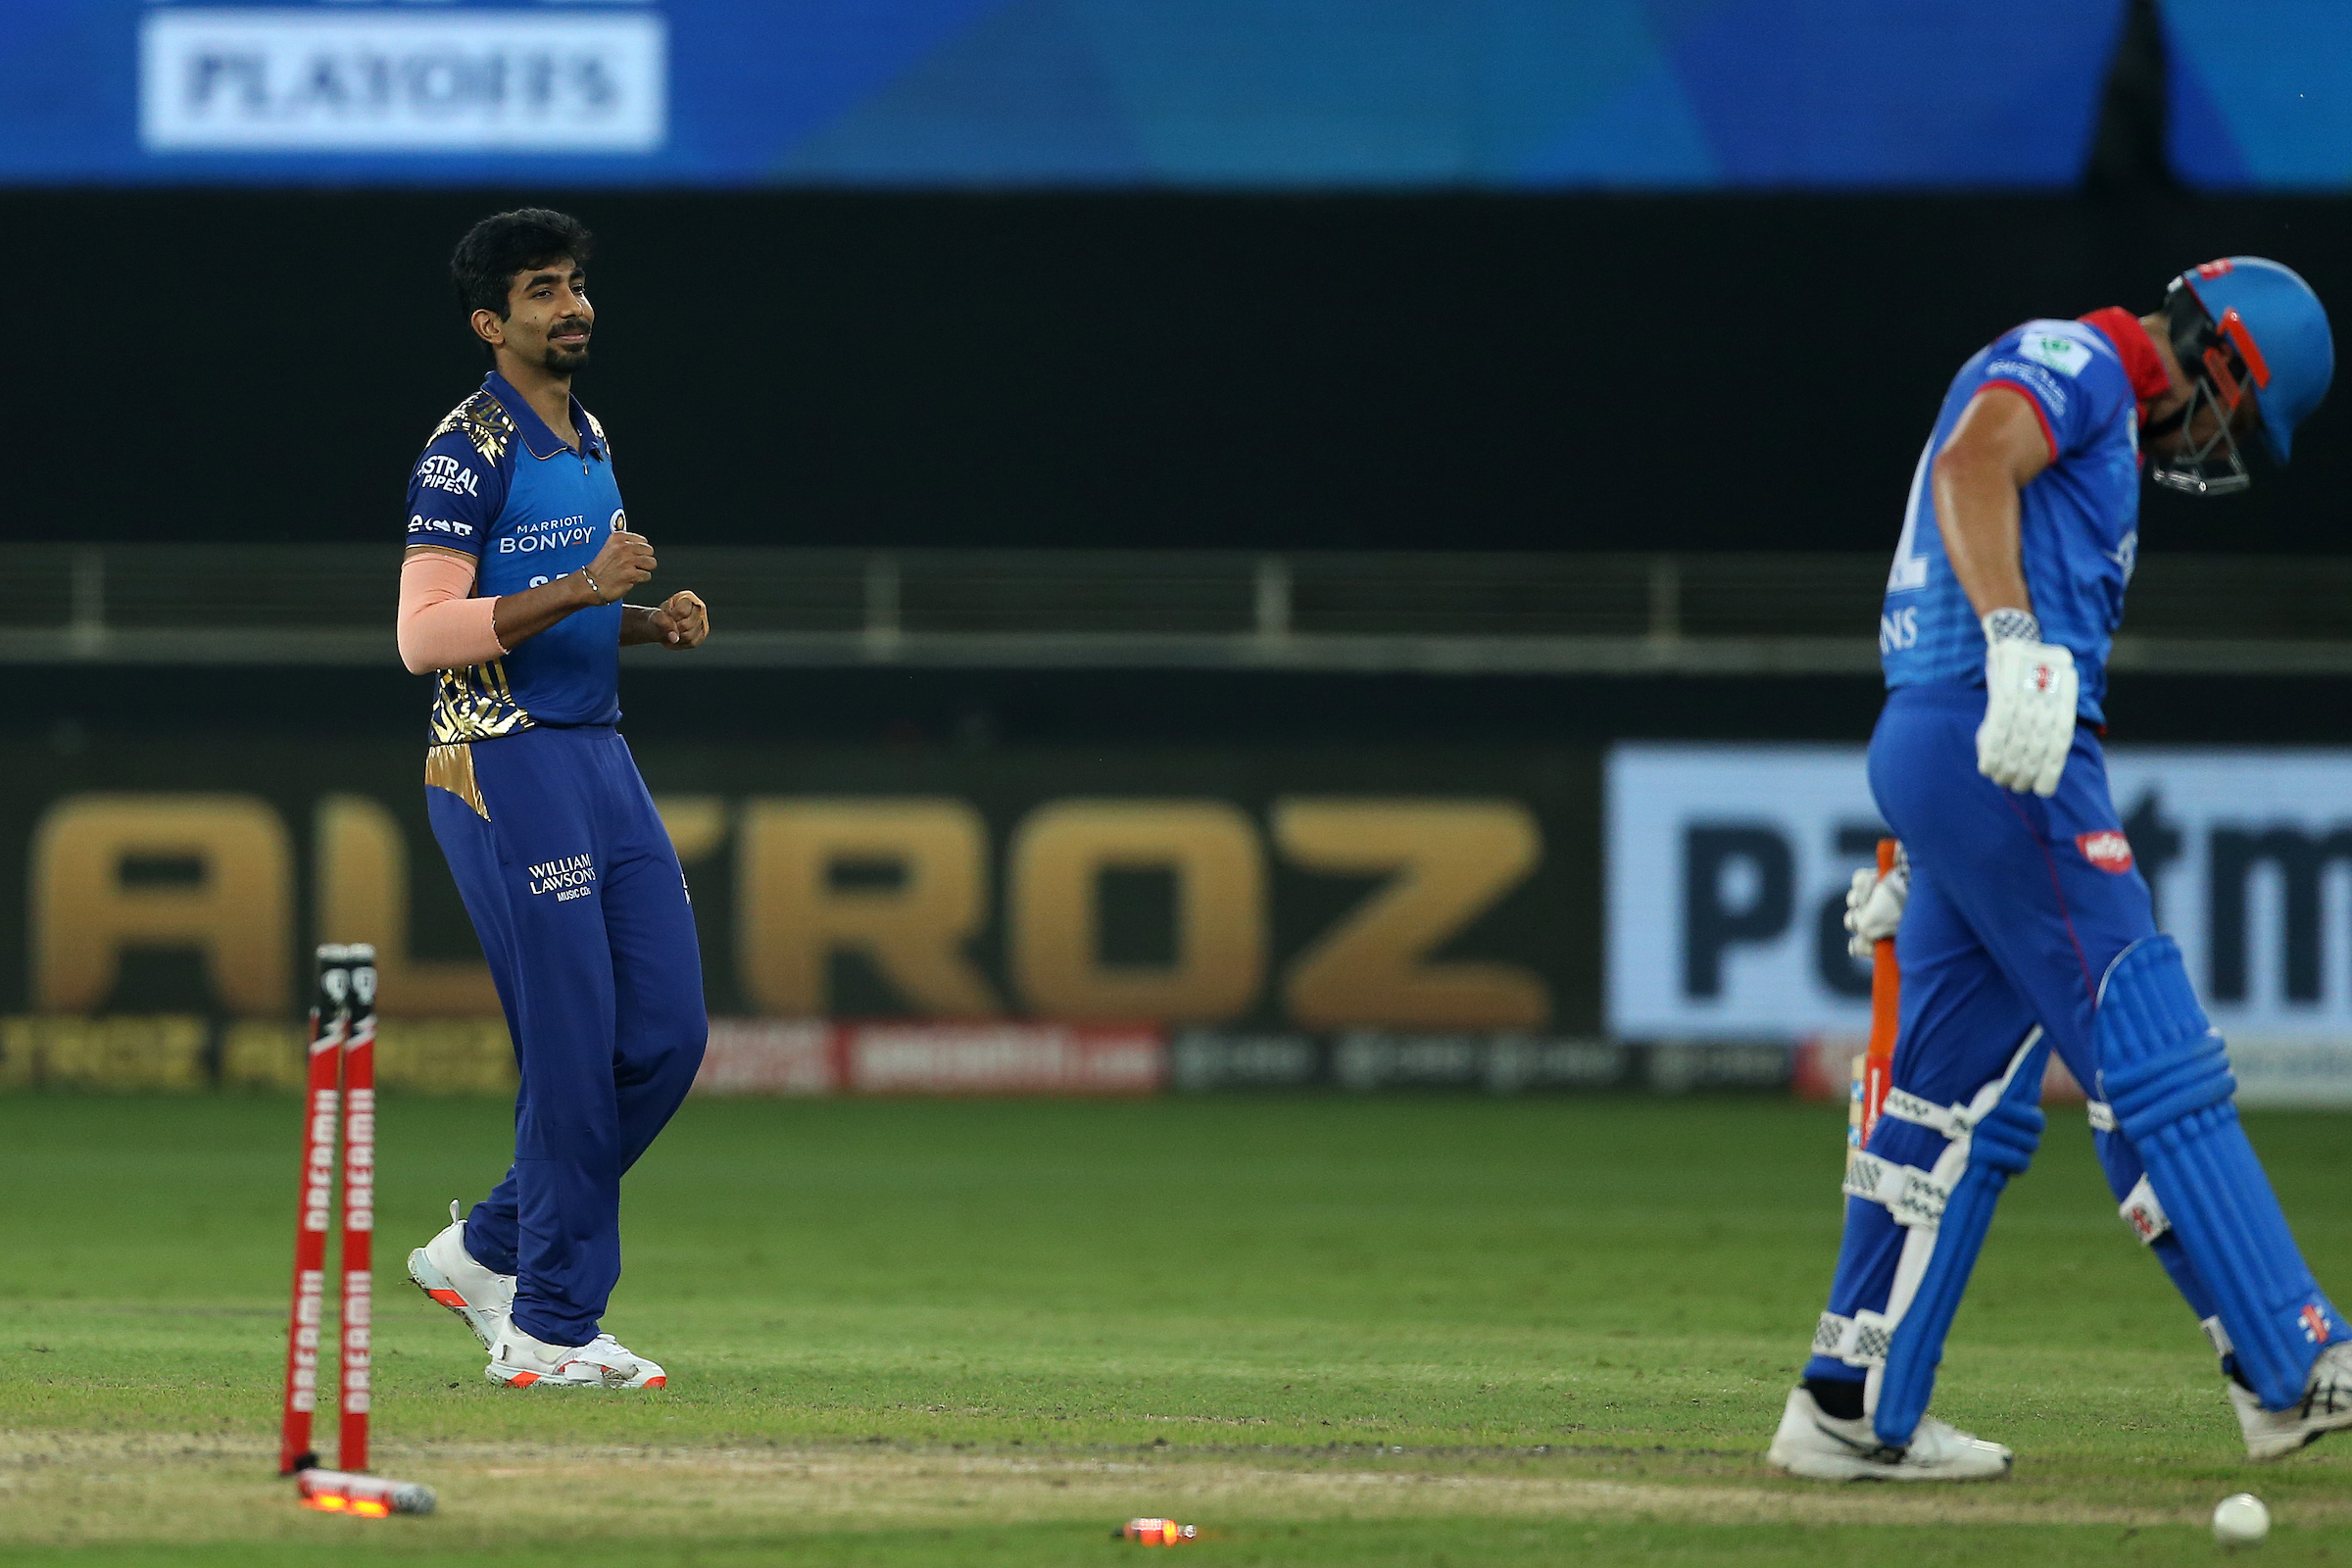 IPL 2020: Bumrah cleans up Marcus Stoinis in his 2nd spell Fire, Stoinis' fighting knock of 65 comes to an end